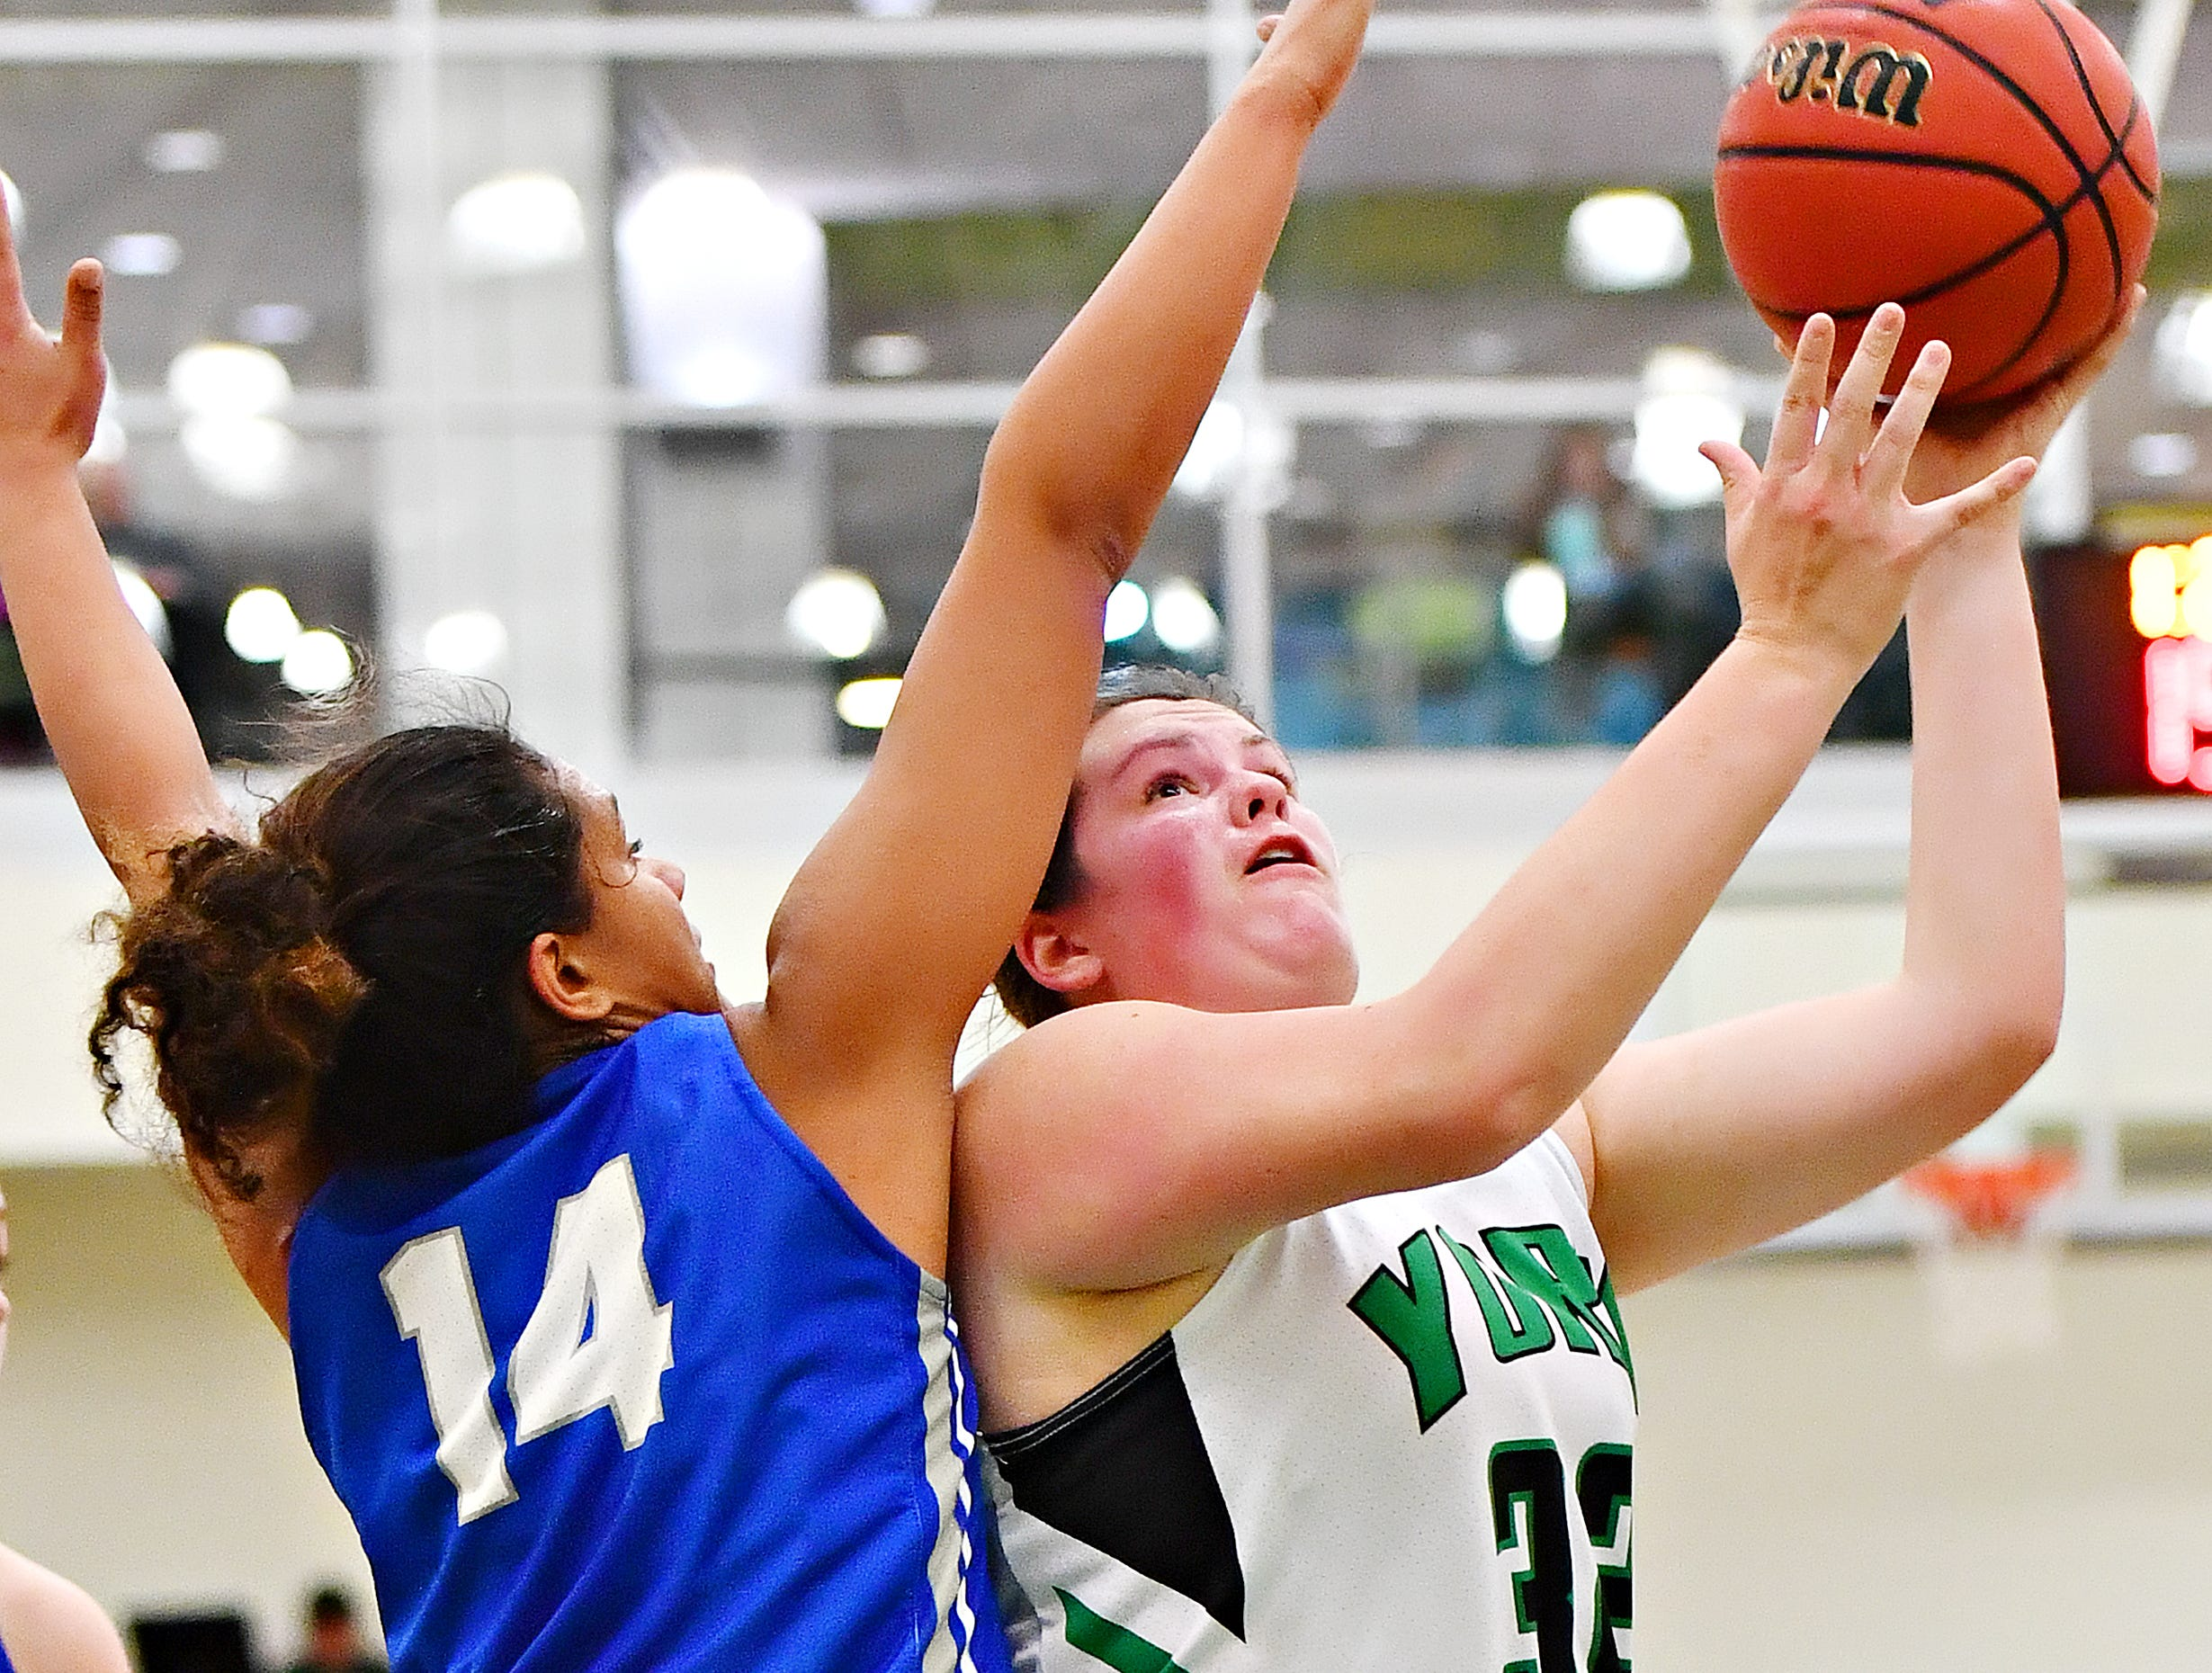 York College's Molly Day takes the ball to the net while Elizabethtown's Mikayla Ruth defends during women's basketball action at Grumbacher Sport and Fitness Center in Spring Garden Township, Wednesday, Nov. 28, 2018. Dawn J. Sagert photo